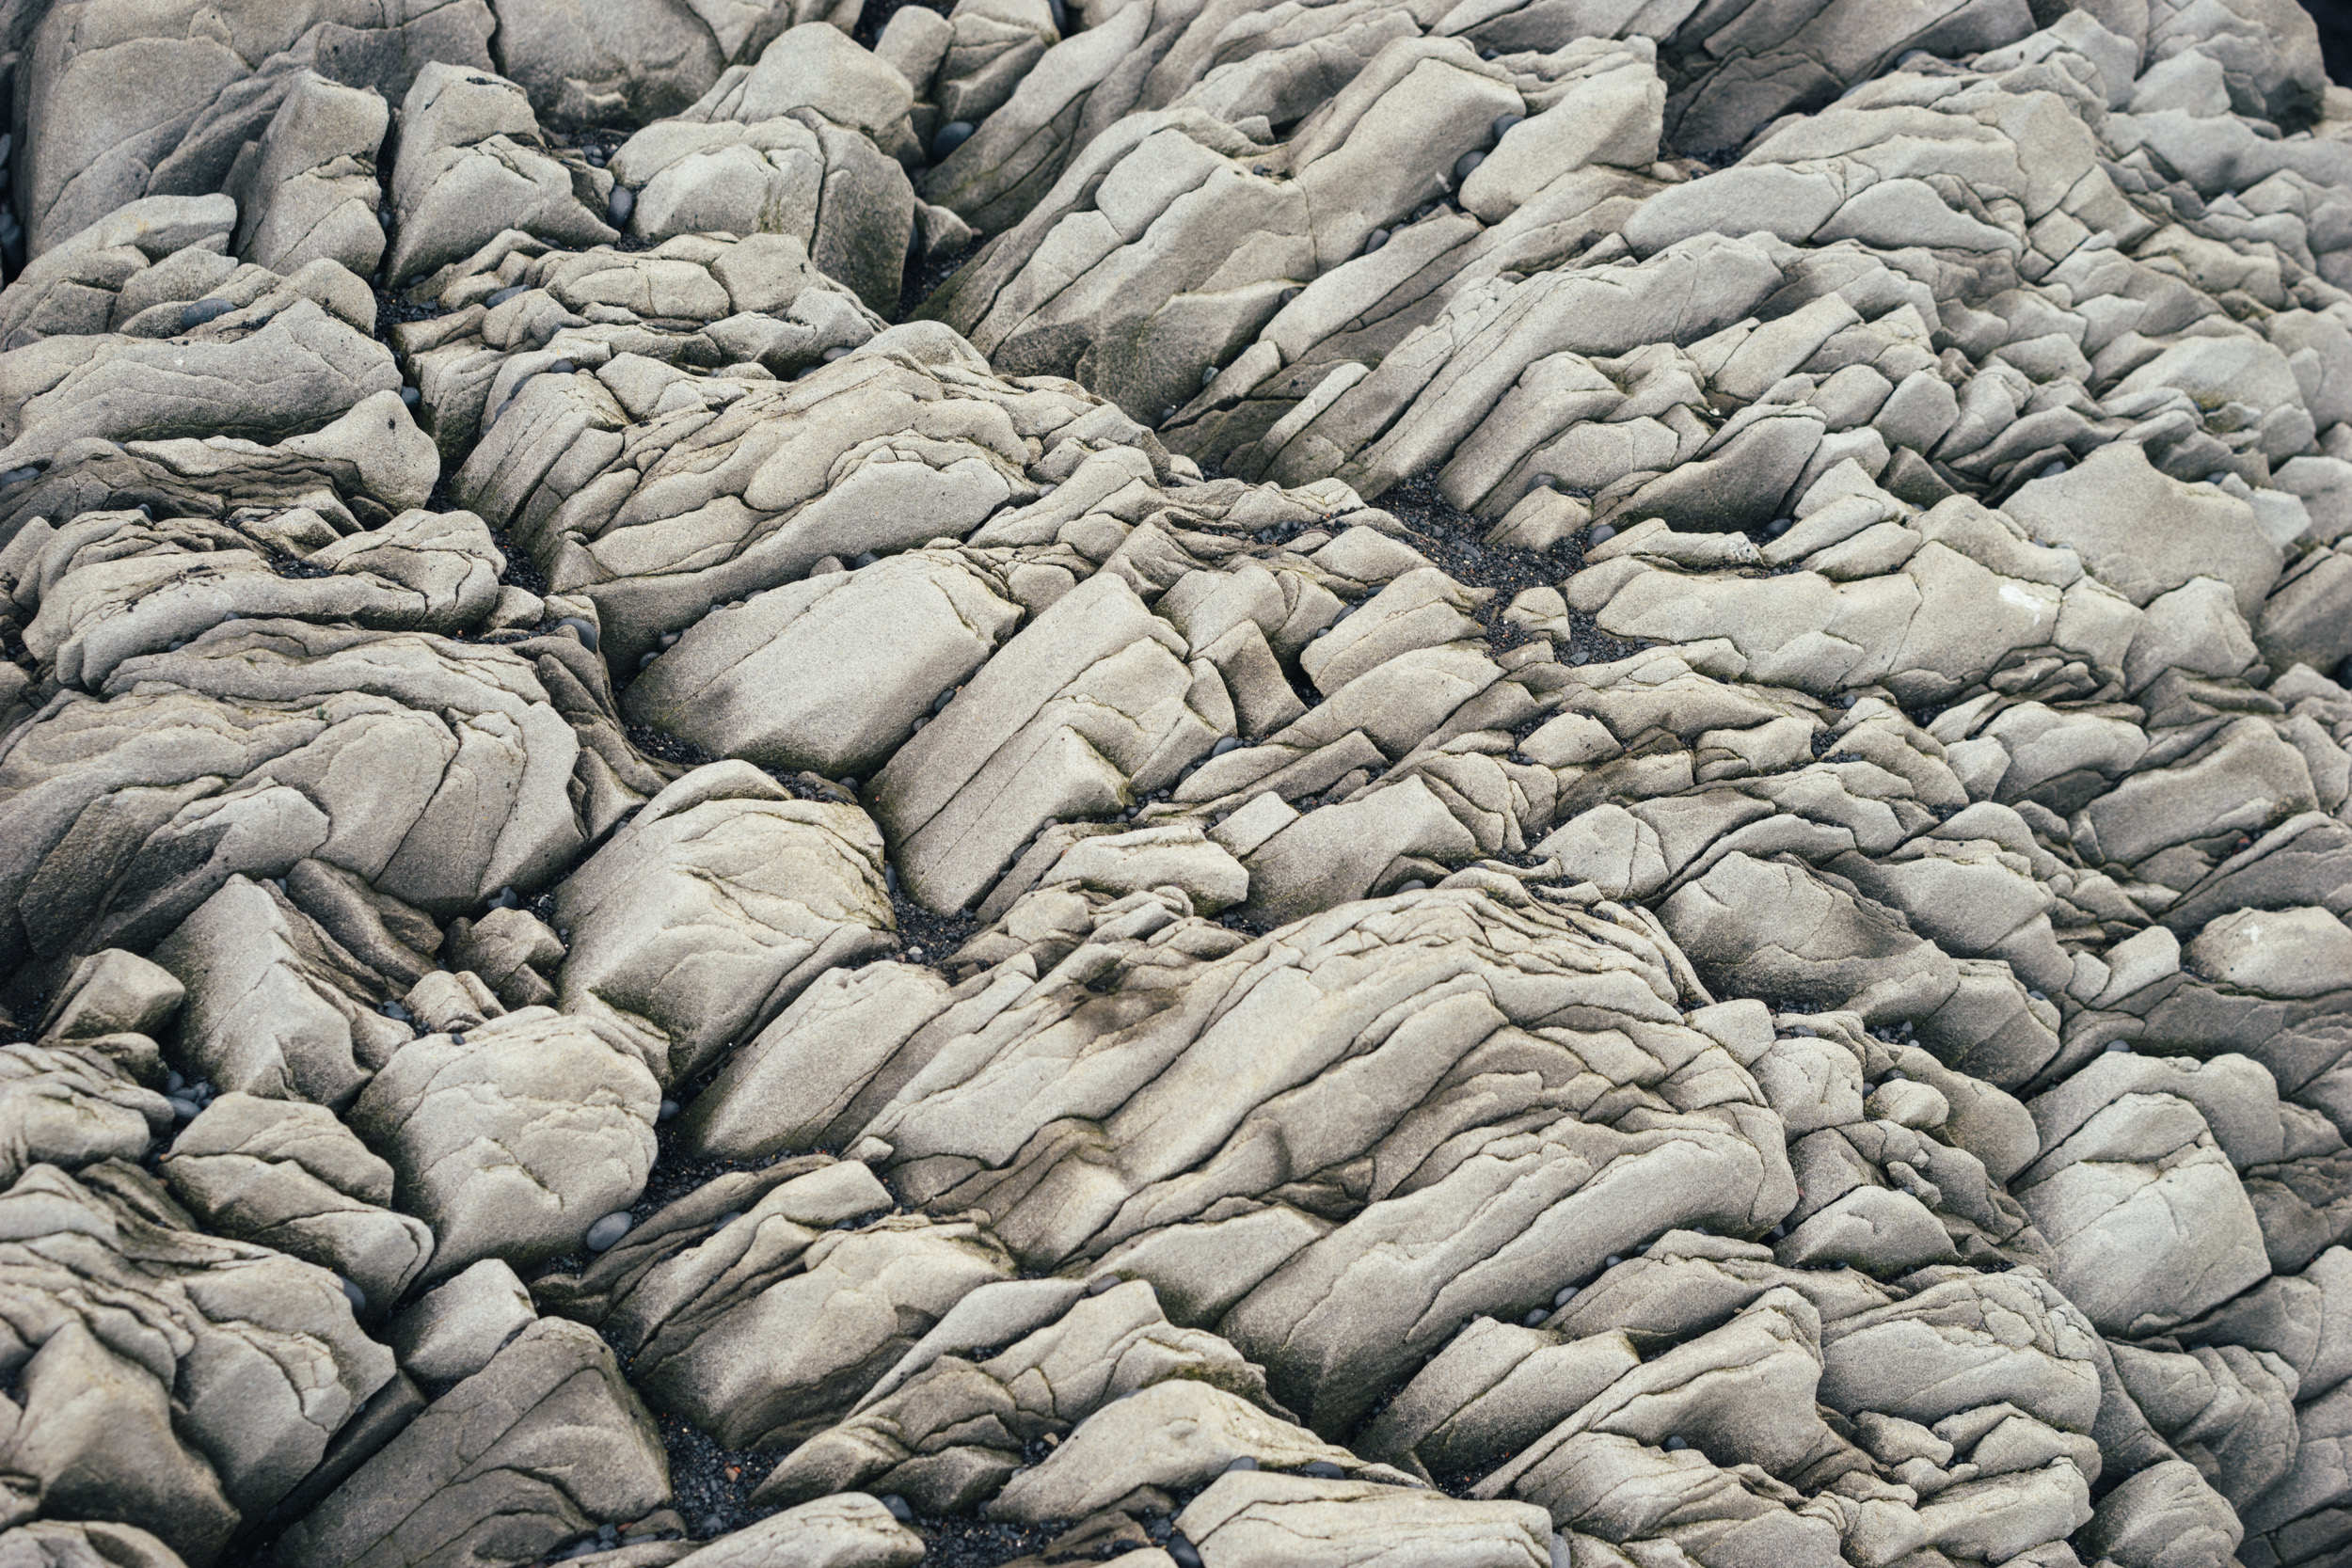 Rocks at Reynisfjara